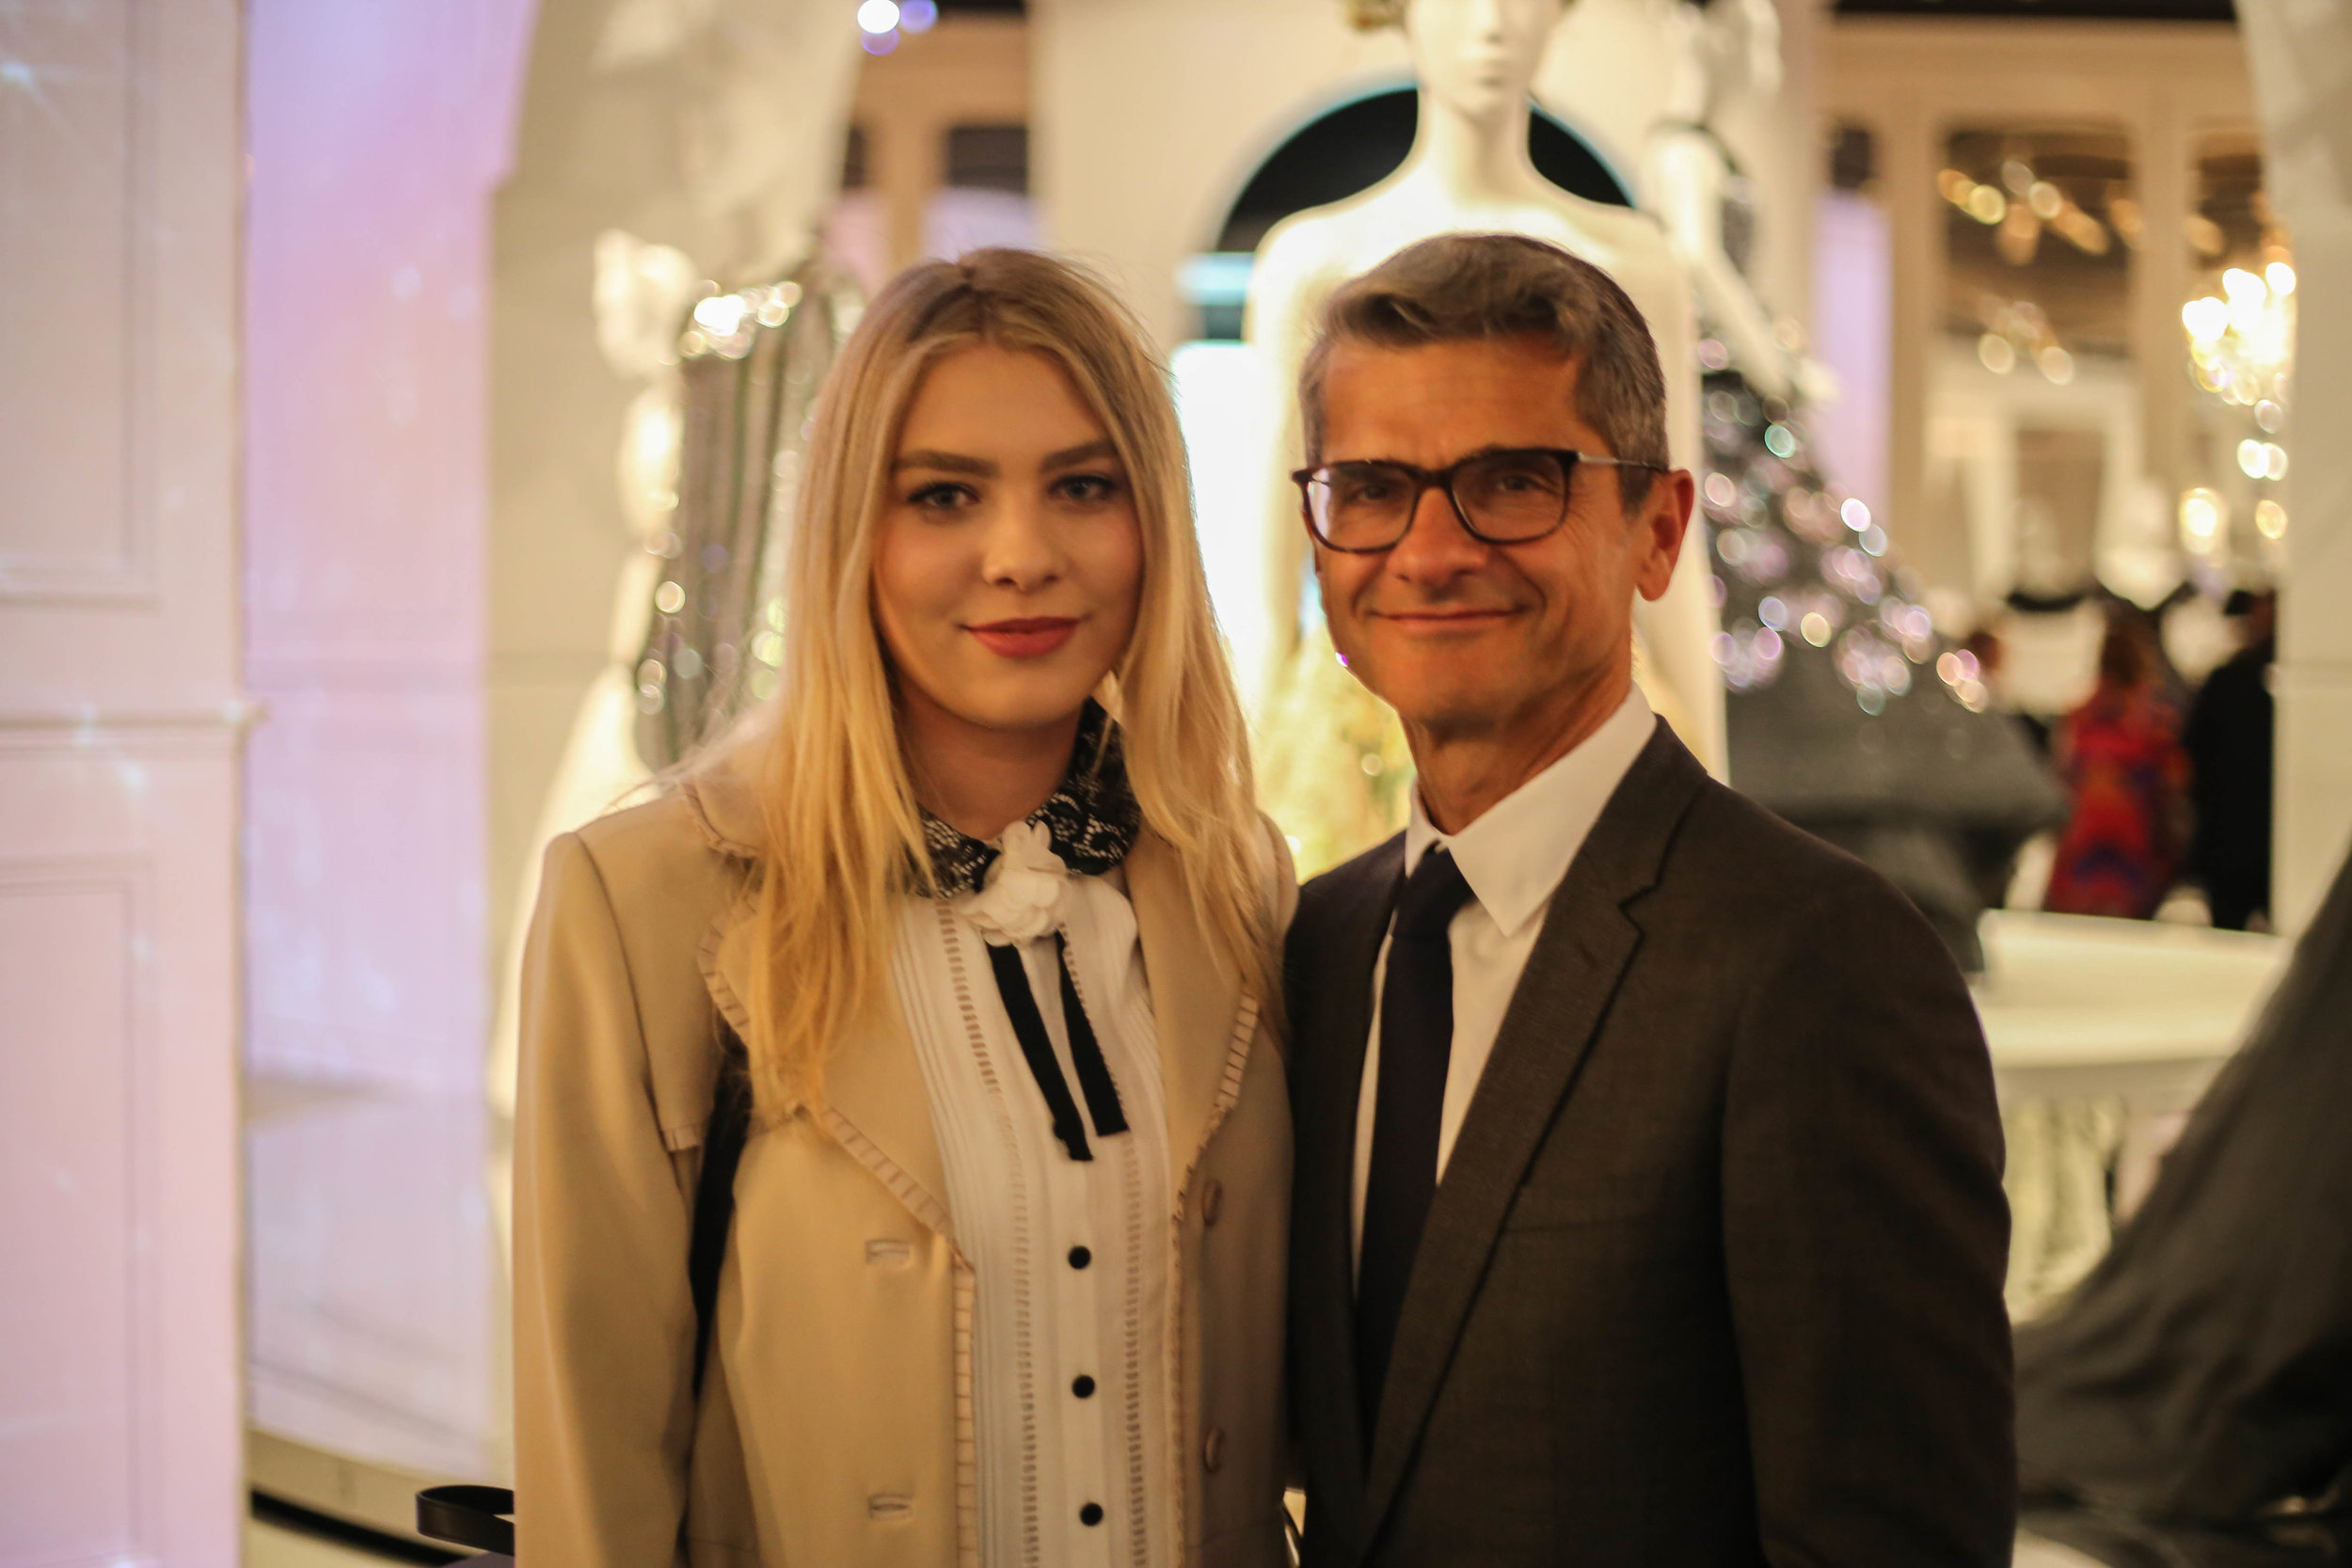 Serge Brunschwig: Christian Dior Couture's CEO &President of Dior Homme